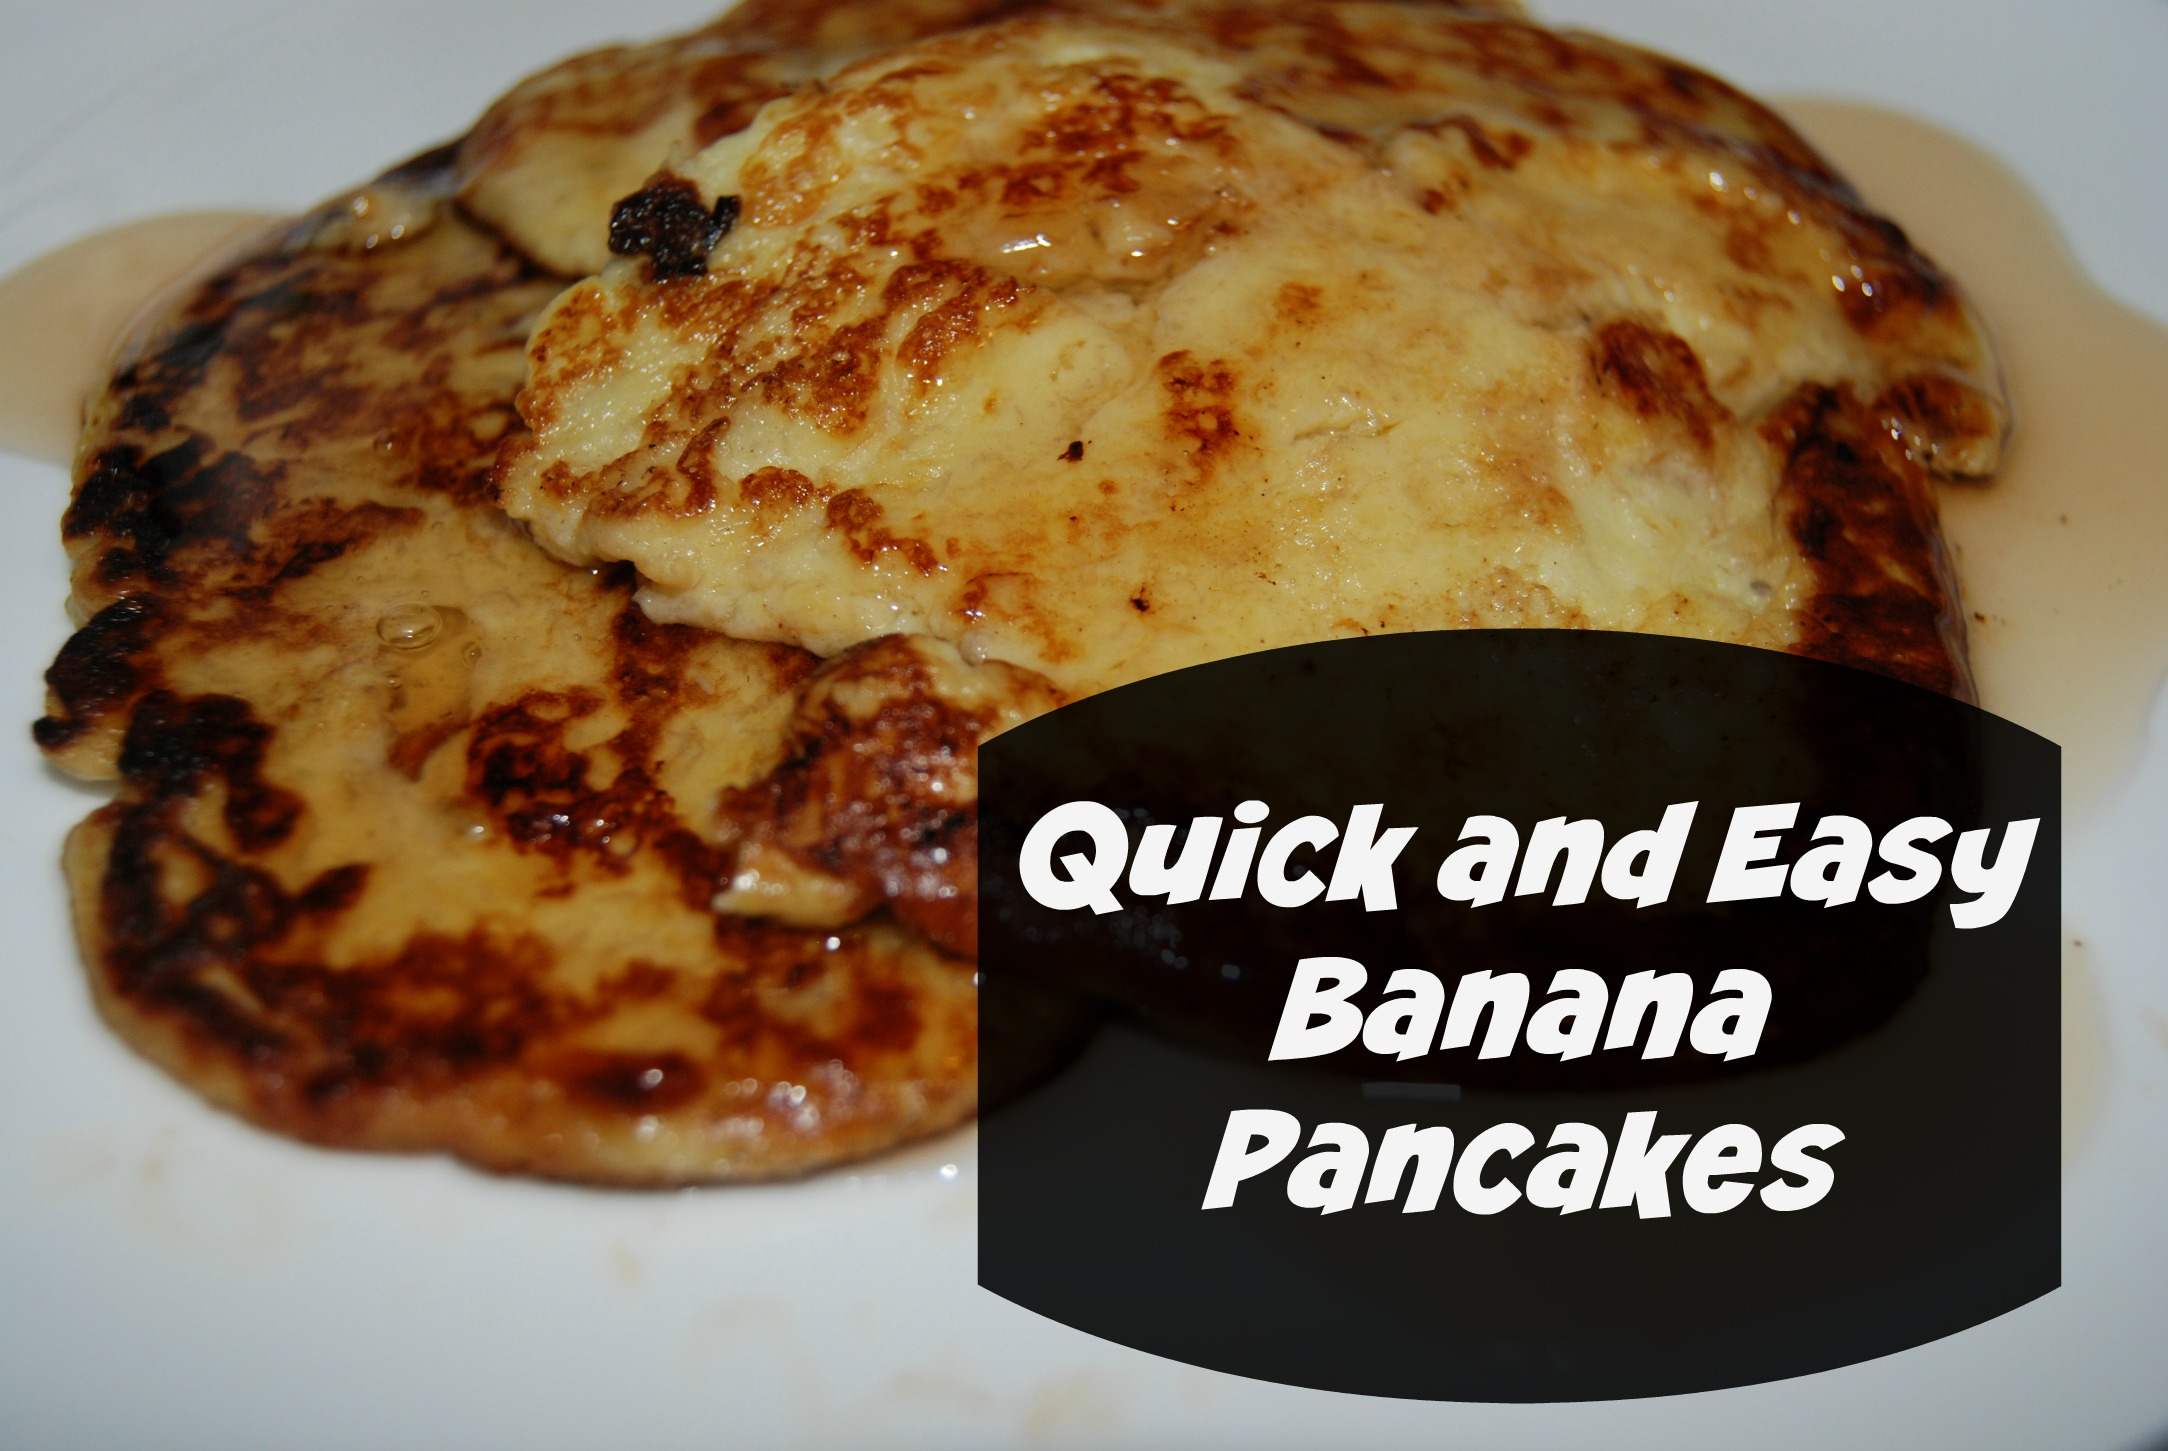 Quick and Easy Banana Pancakes #GluttenFree #Recipe - Naturally ...